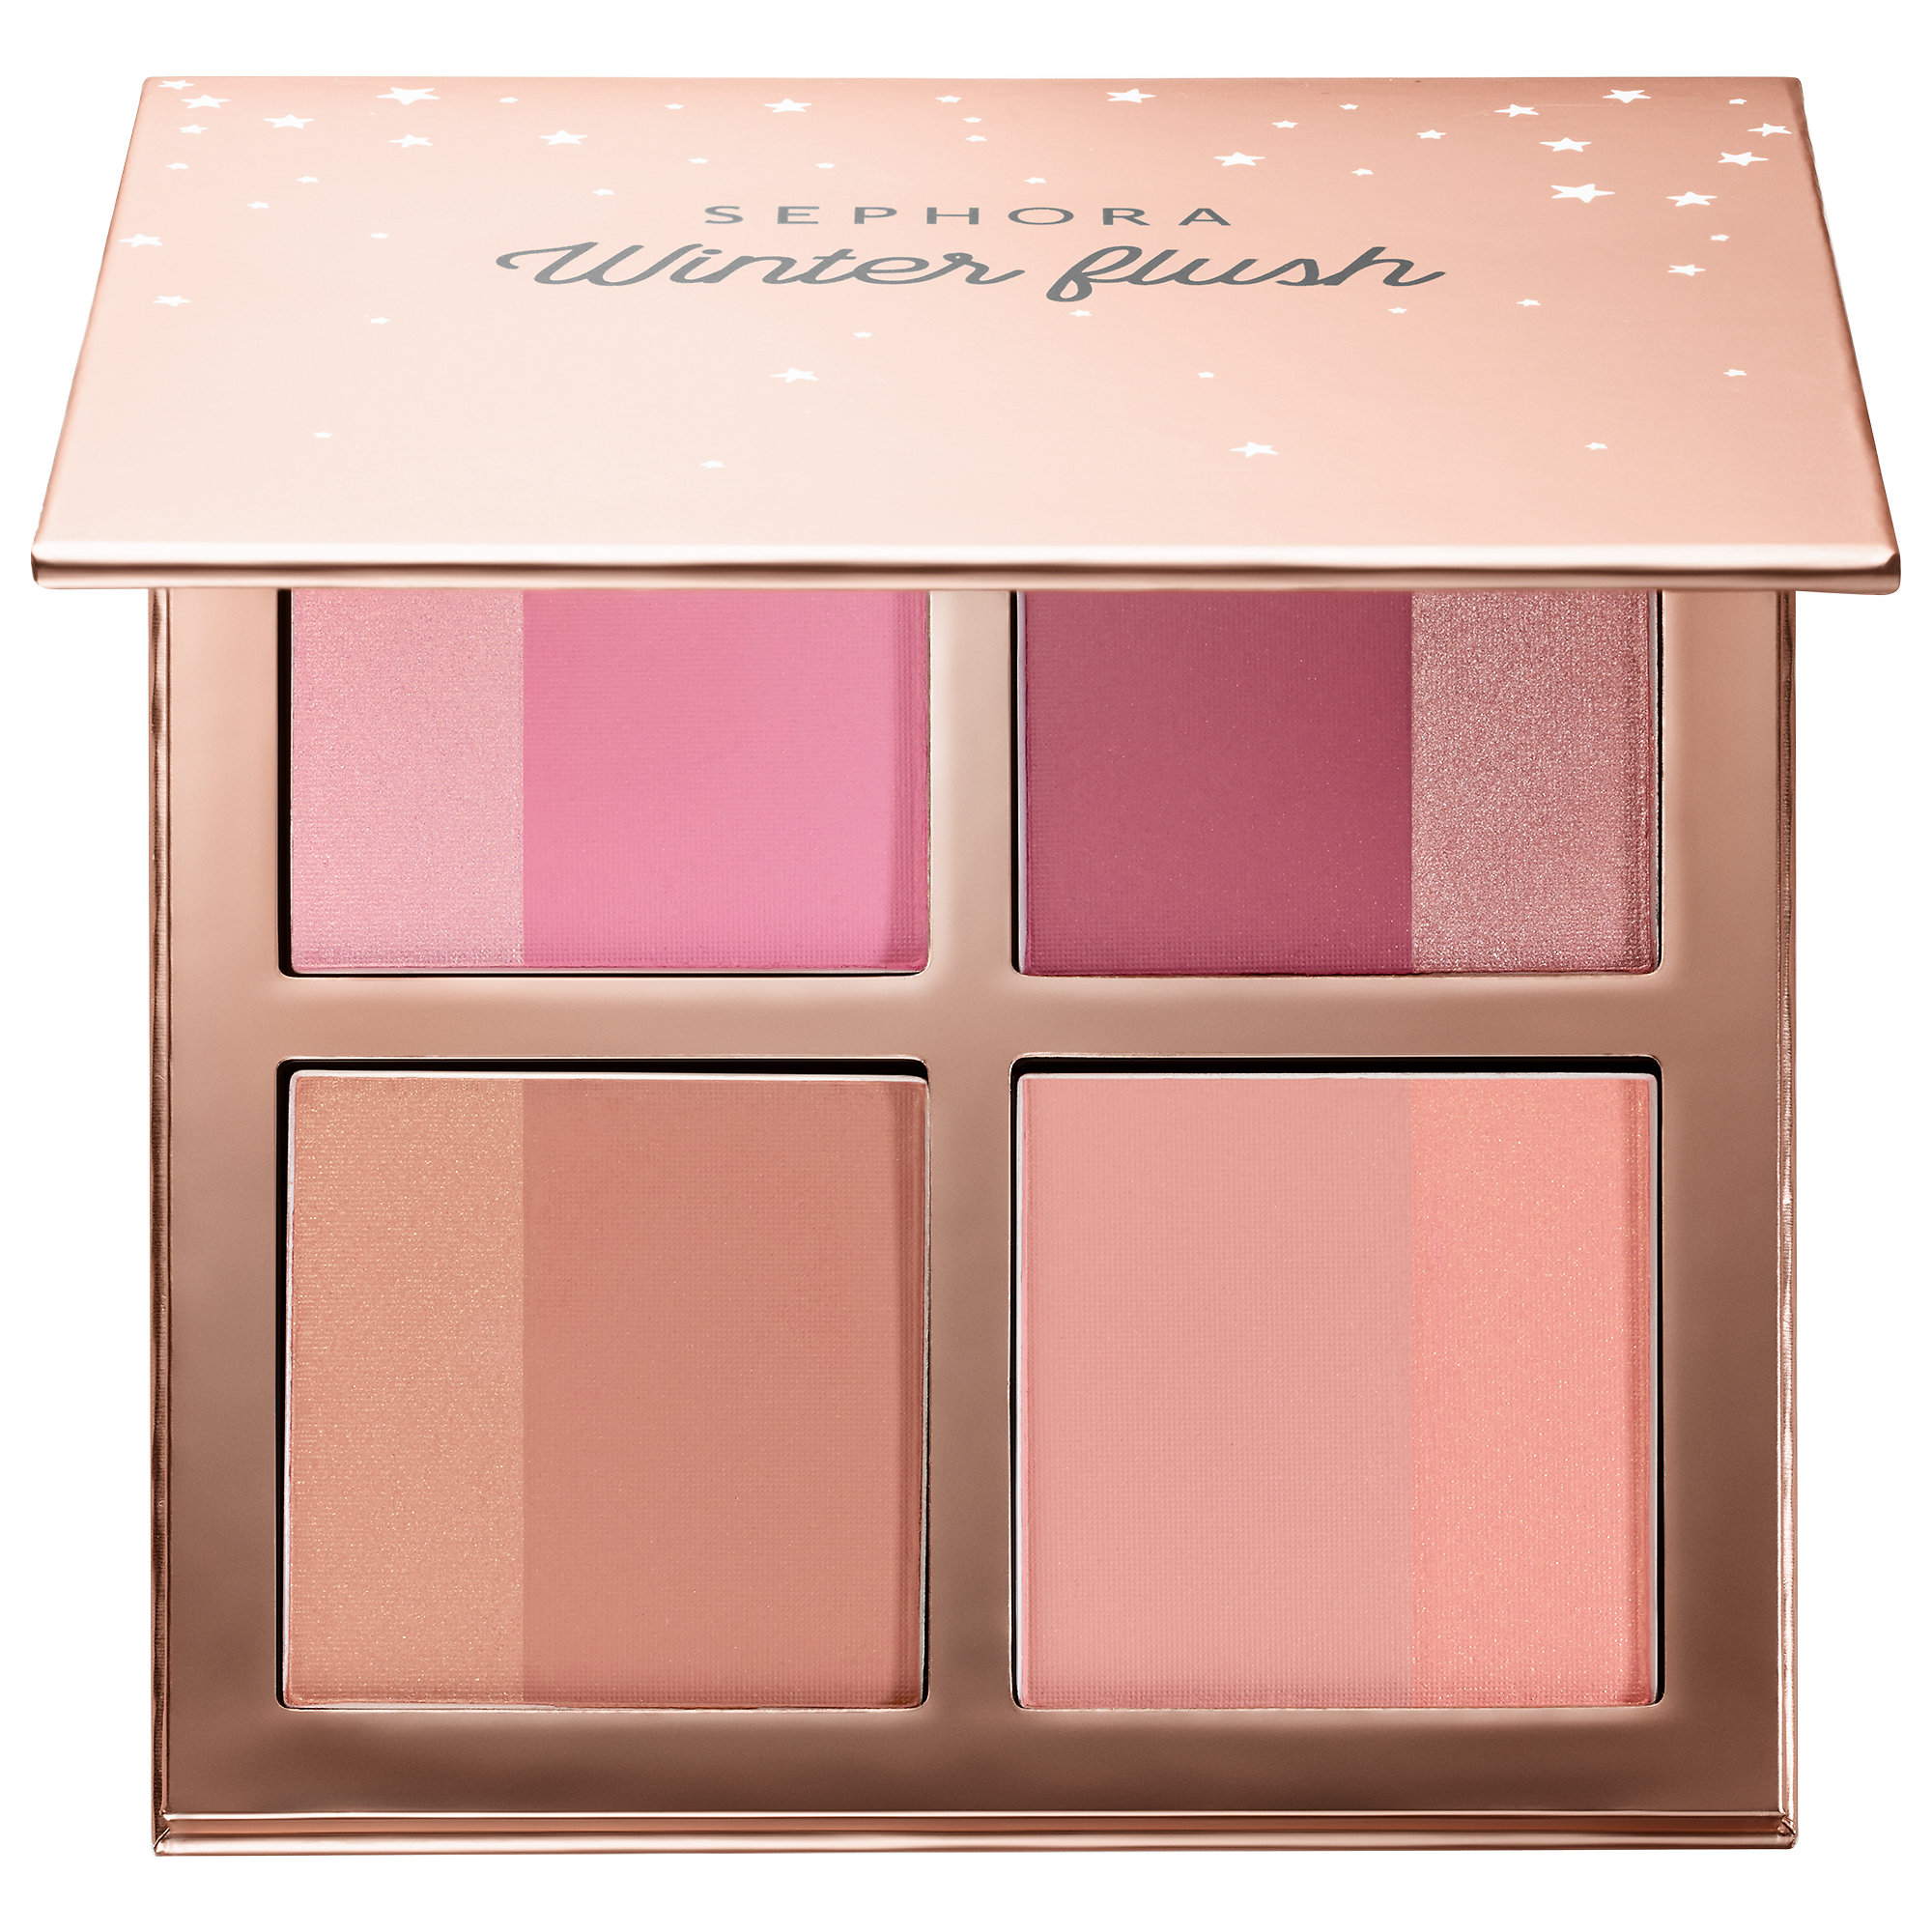 Sephora Winter Flush Blush Palette